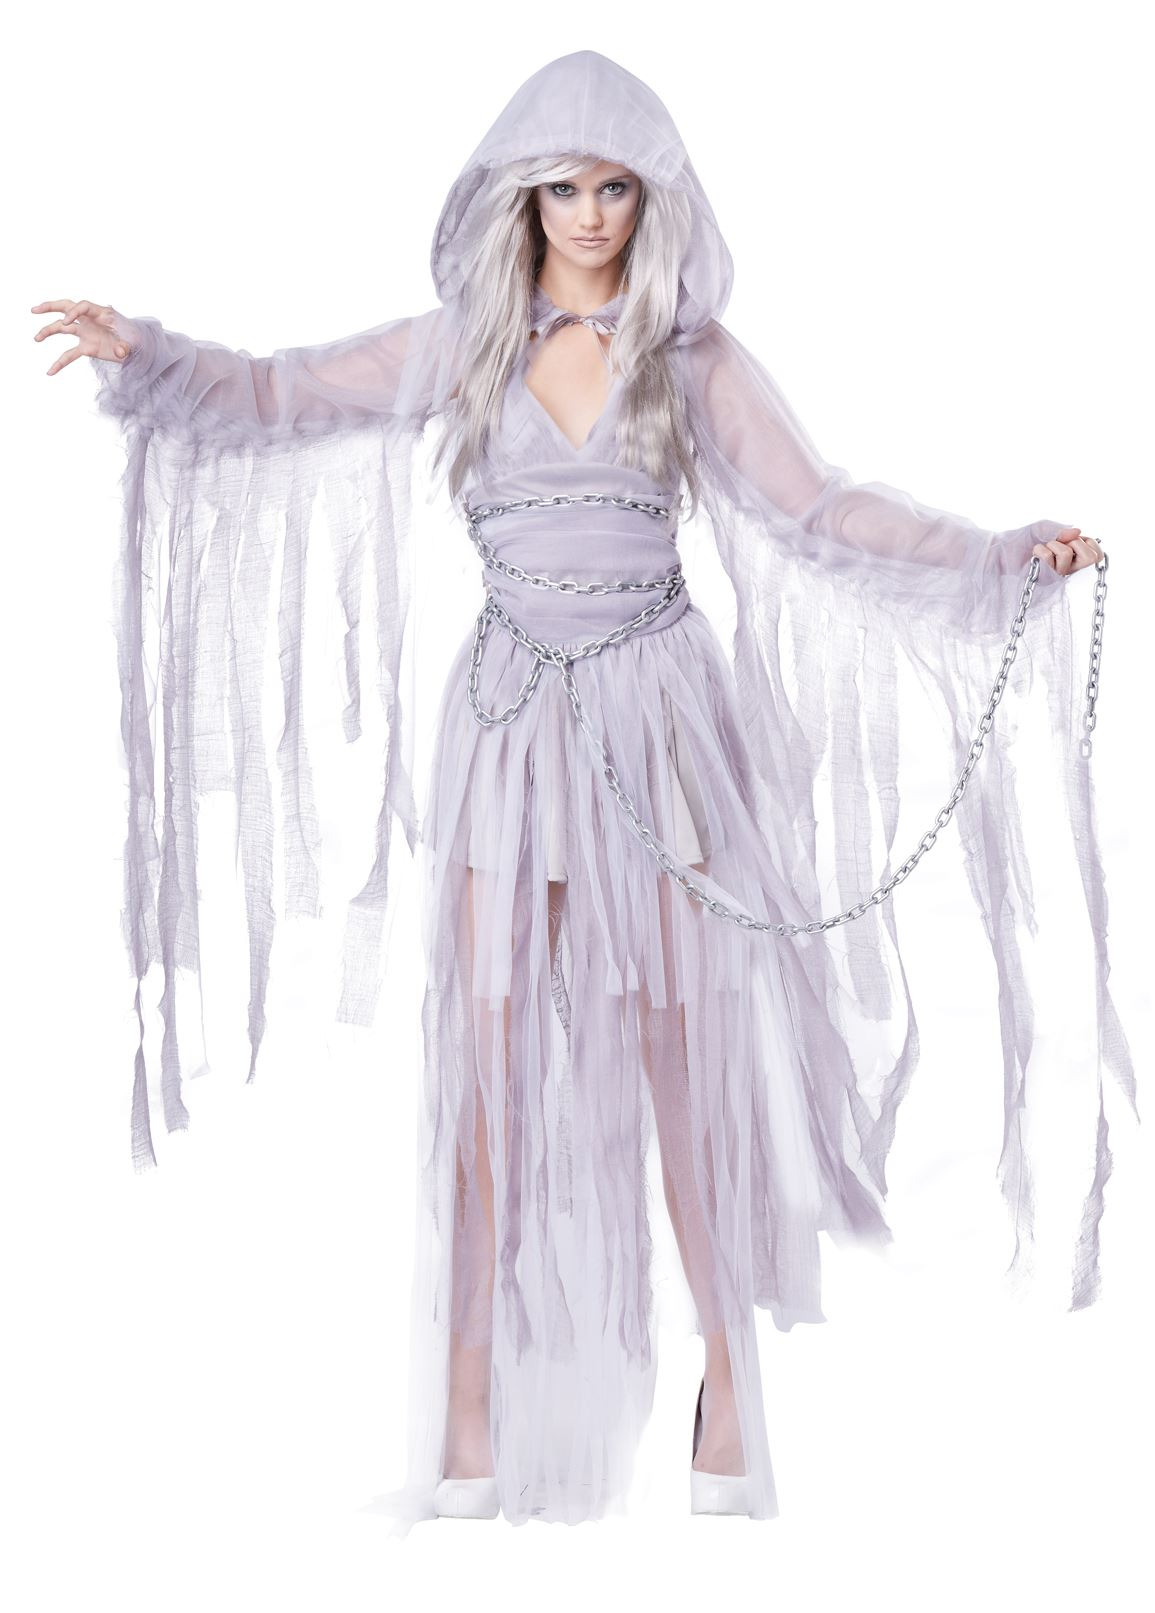 adult haunting beauty women halloween costume | $49.99 | the costume